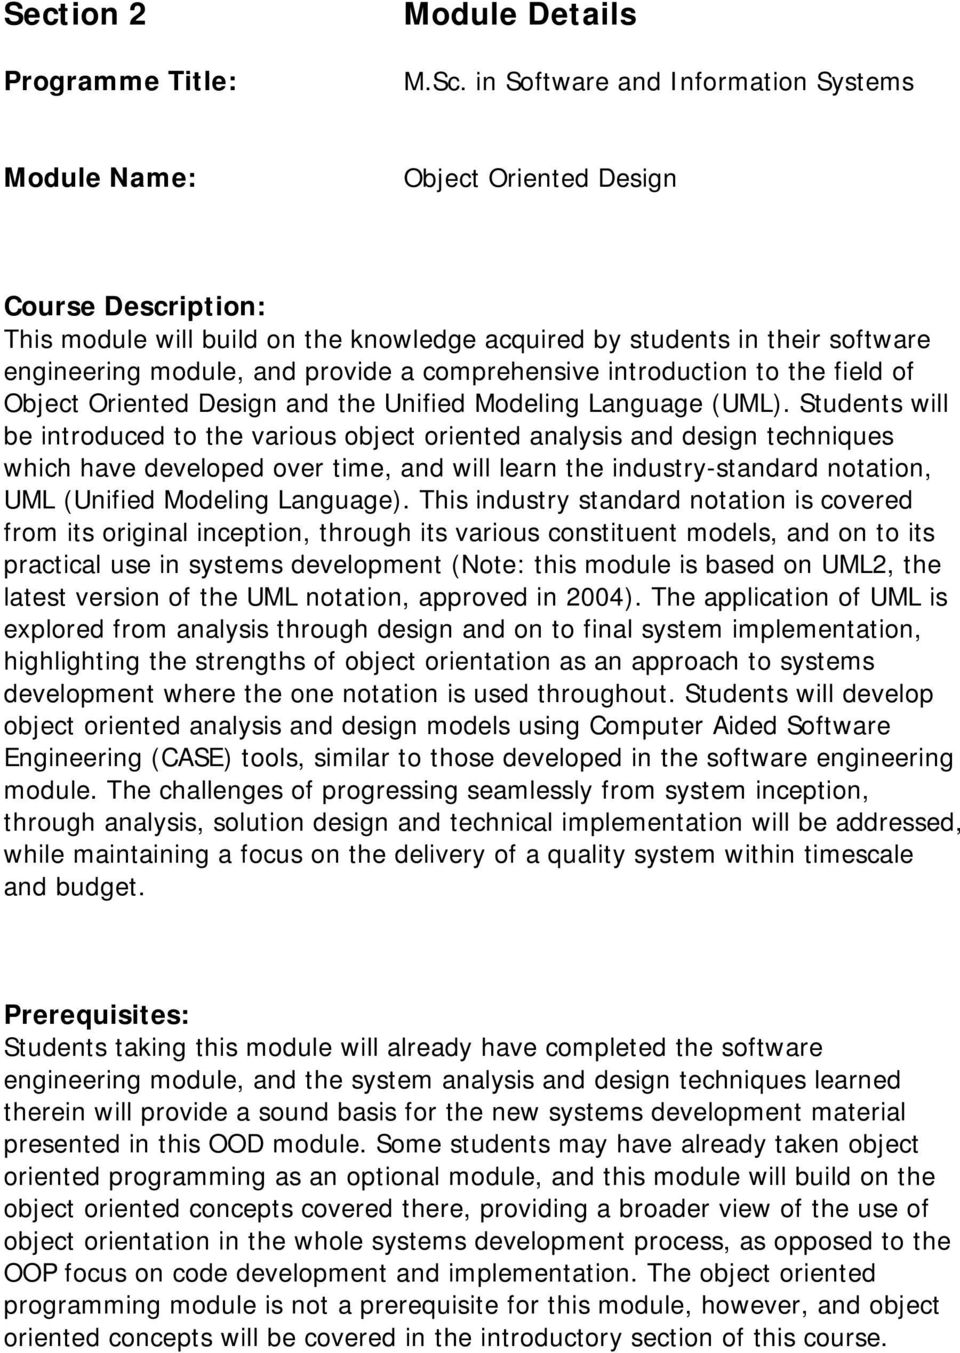 provide a comprehensive introduction to the field of Object Oriented Design and the Unified Modeling Language (UML).